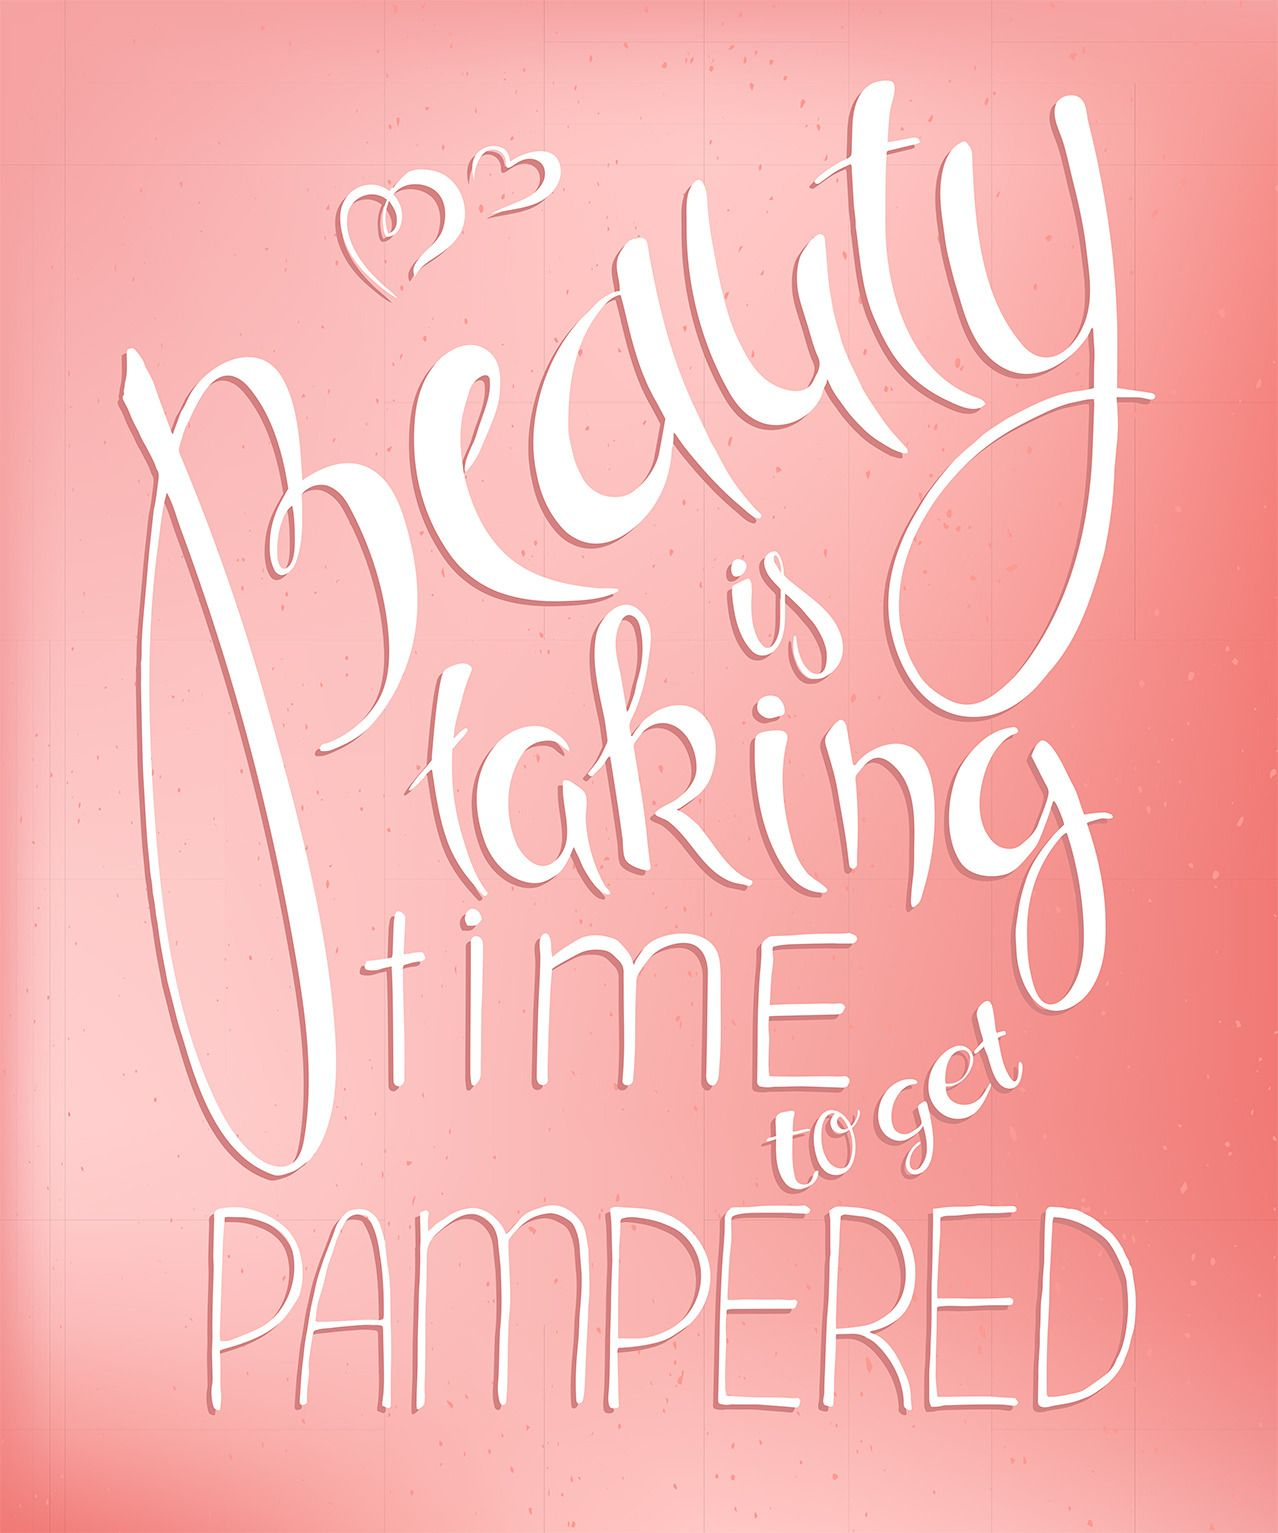 Beauty is taking the time to get pampered. Book your Spa